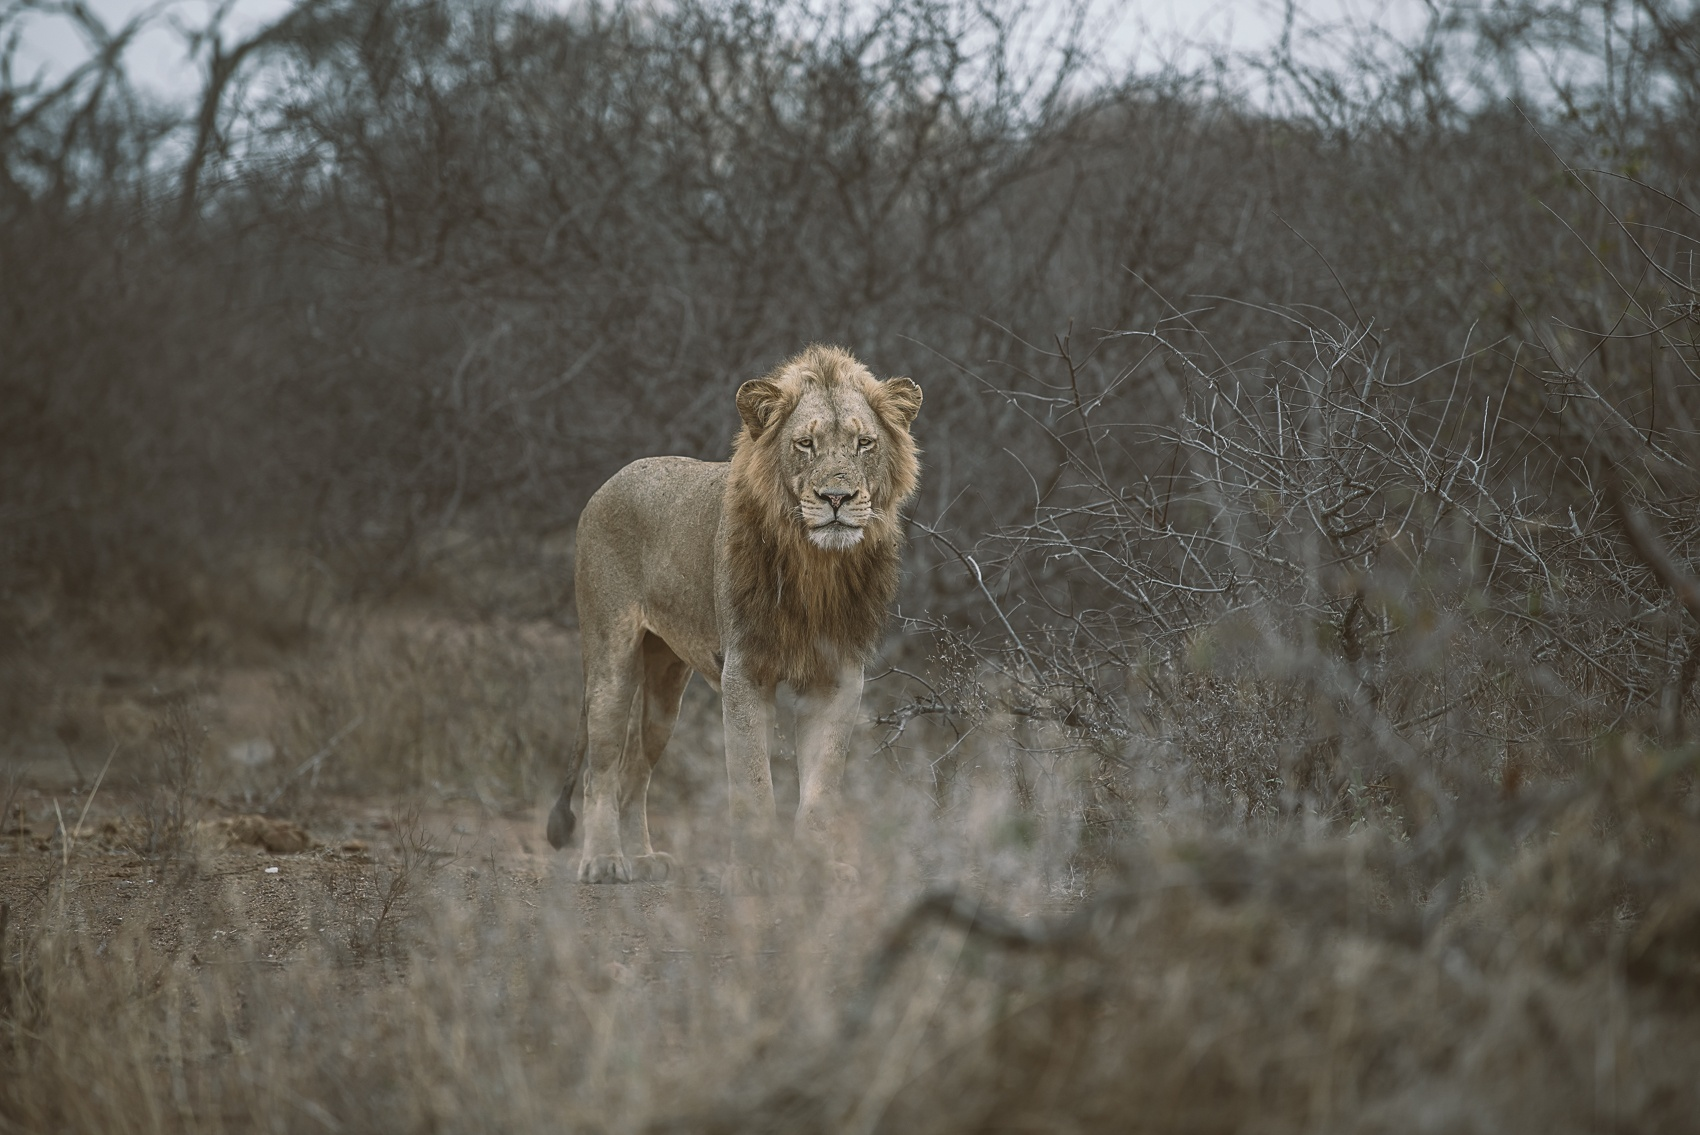 Safari 7 - Lion